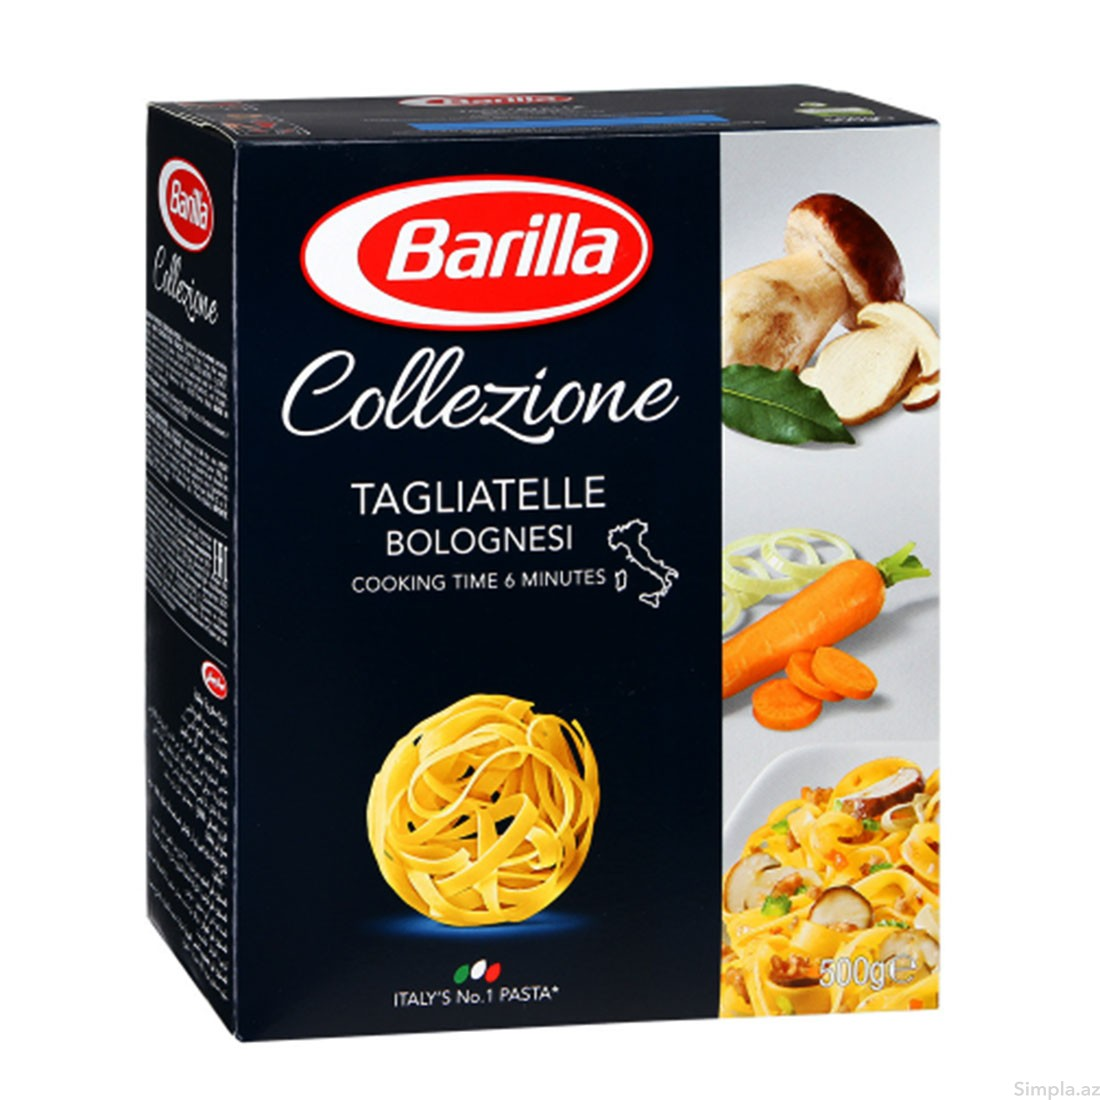 barilla integrated italian pasta manufacturer essay Barilla holding company profile barilla holding spa in packaged food 38 pages shift from tomato sauces to pasta sauces to benefit barilla.